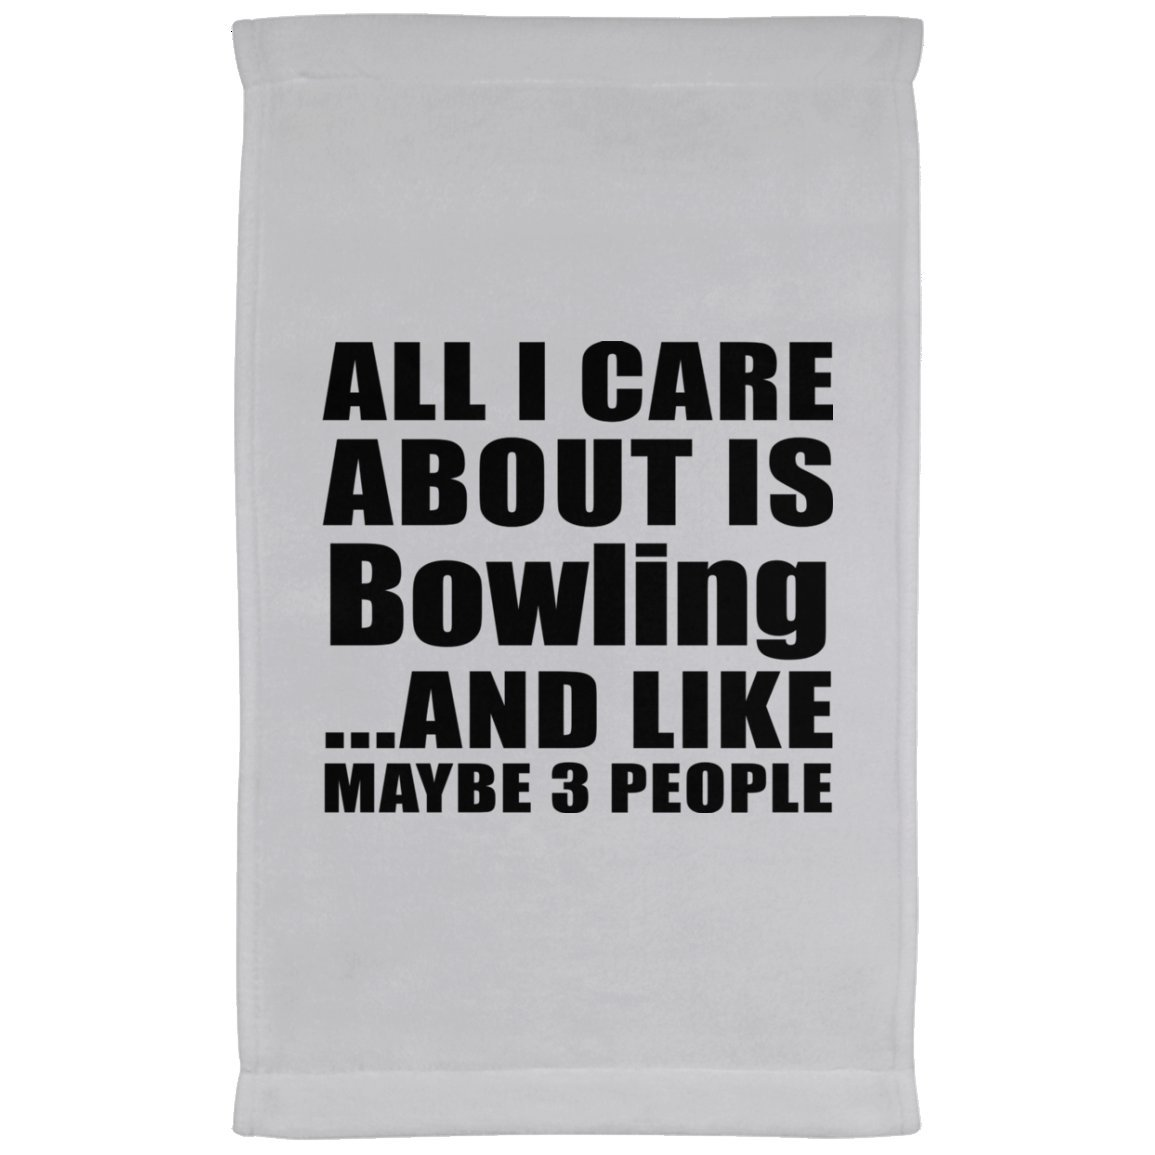 Designsify All I Care About Is Bowling And Like Maybe 3 People - Kitchen Towel, Microfiber Velour Towel, Best Gift for Birthday, Anniversary, Easter, Valentine's Mother's Father's Day